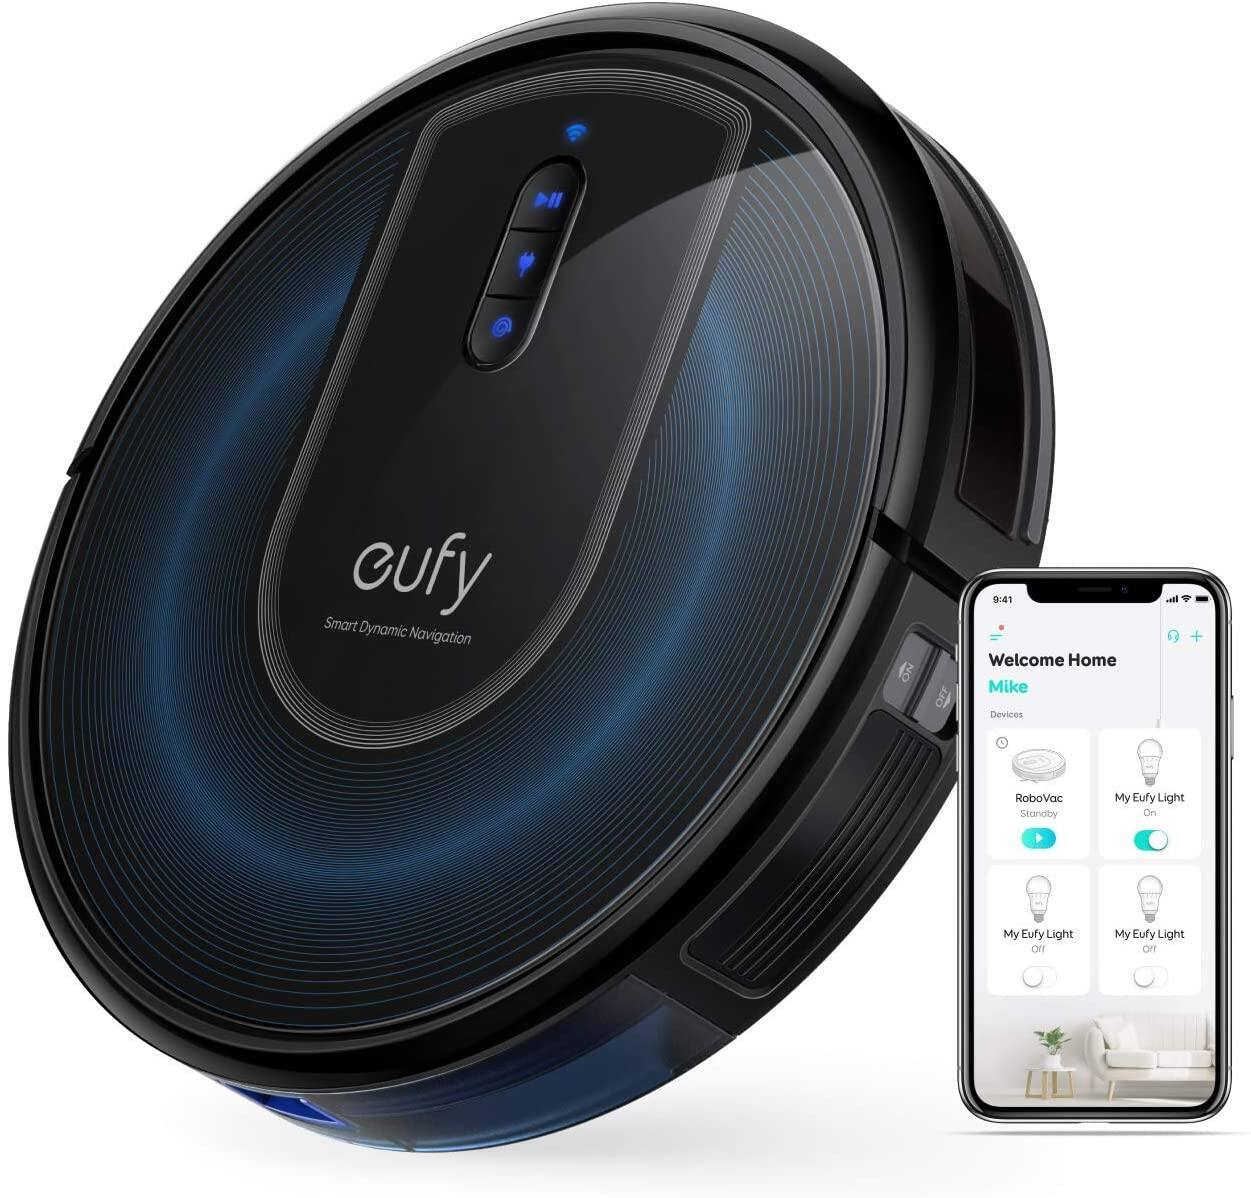 Eufy by Anker RoboVac G30, Robot Vacuum with Smart Dynamic Navigation 2.0 for $229.99